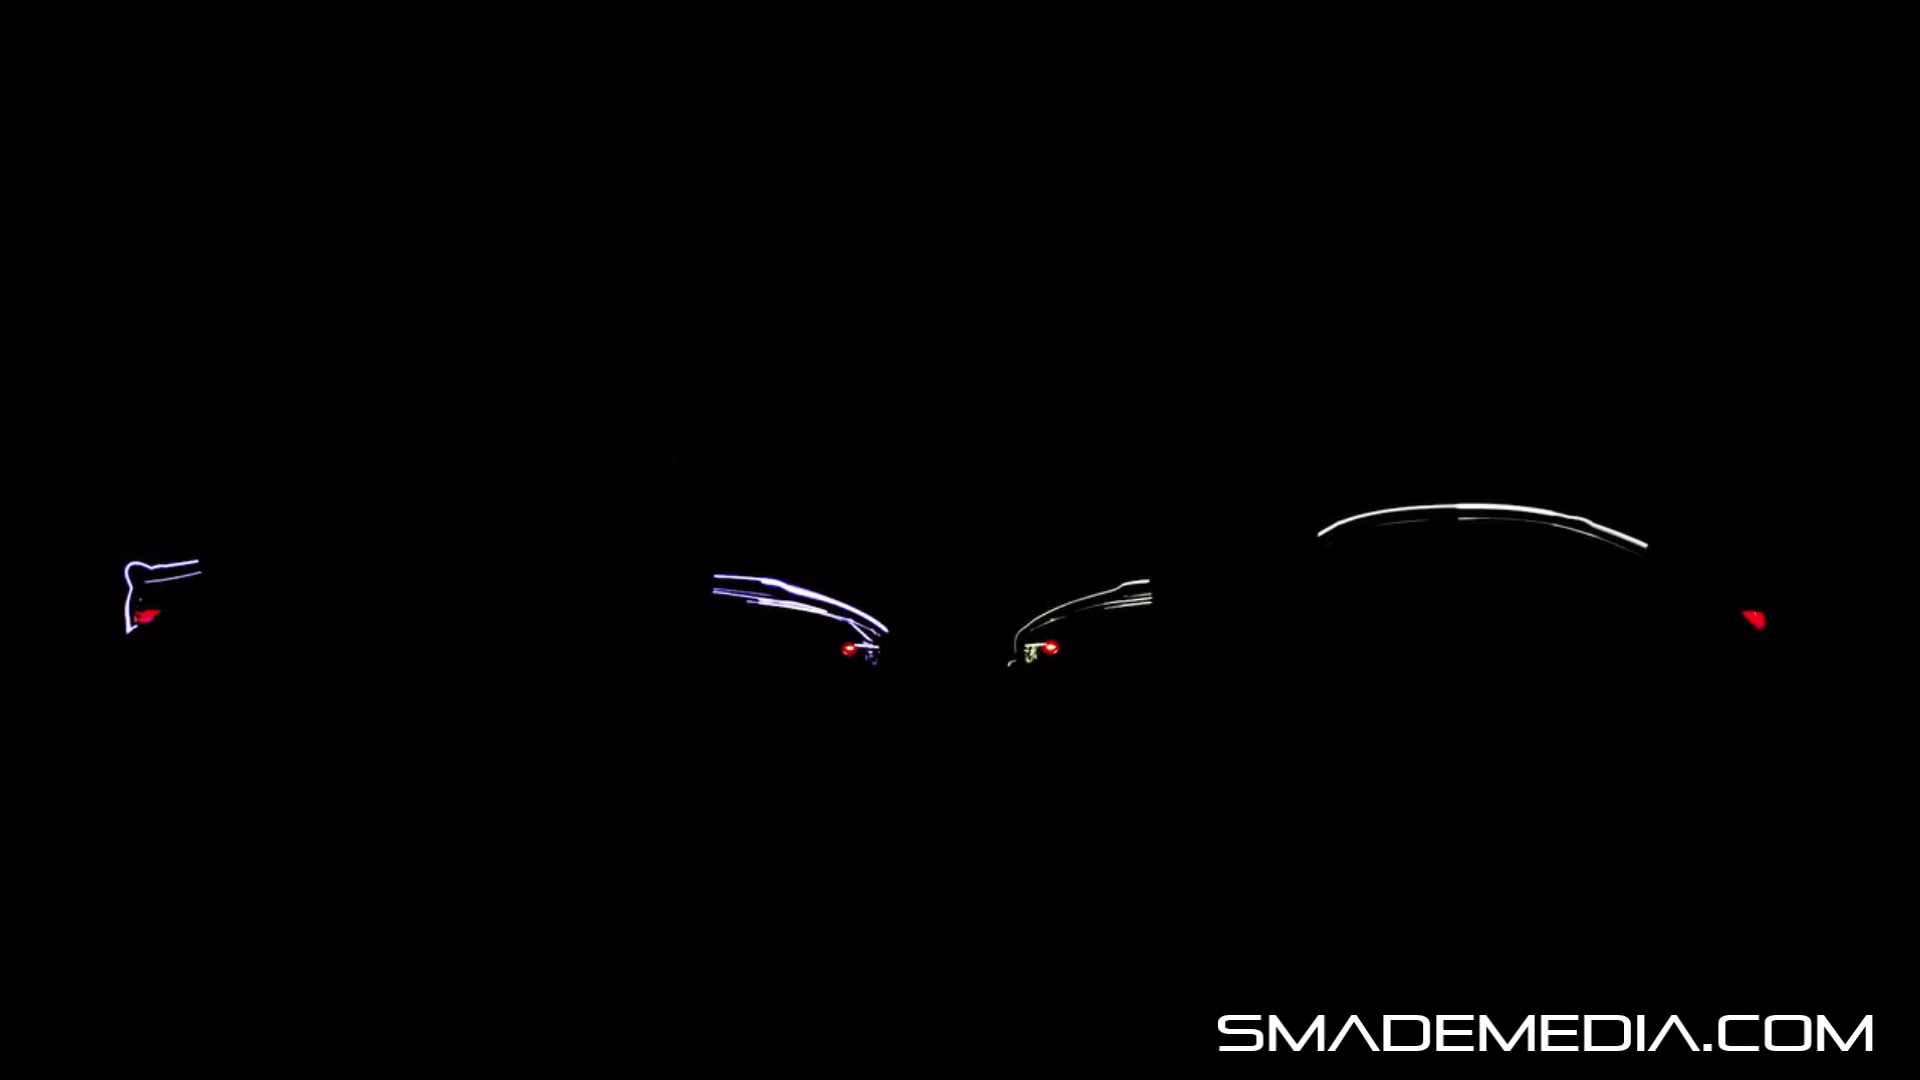 BMW M3 and M4 Teasers - (11) SMADEMEDIA Galleria